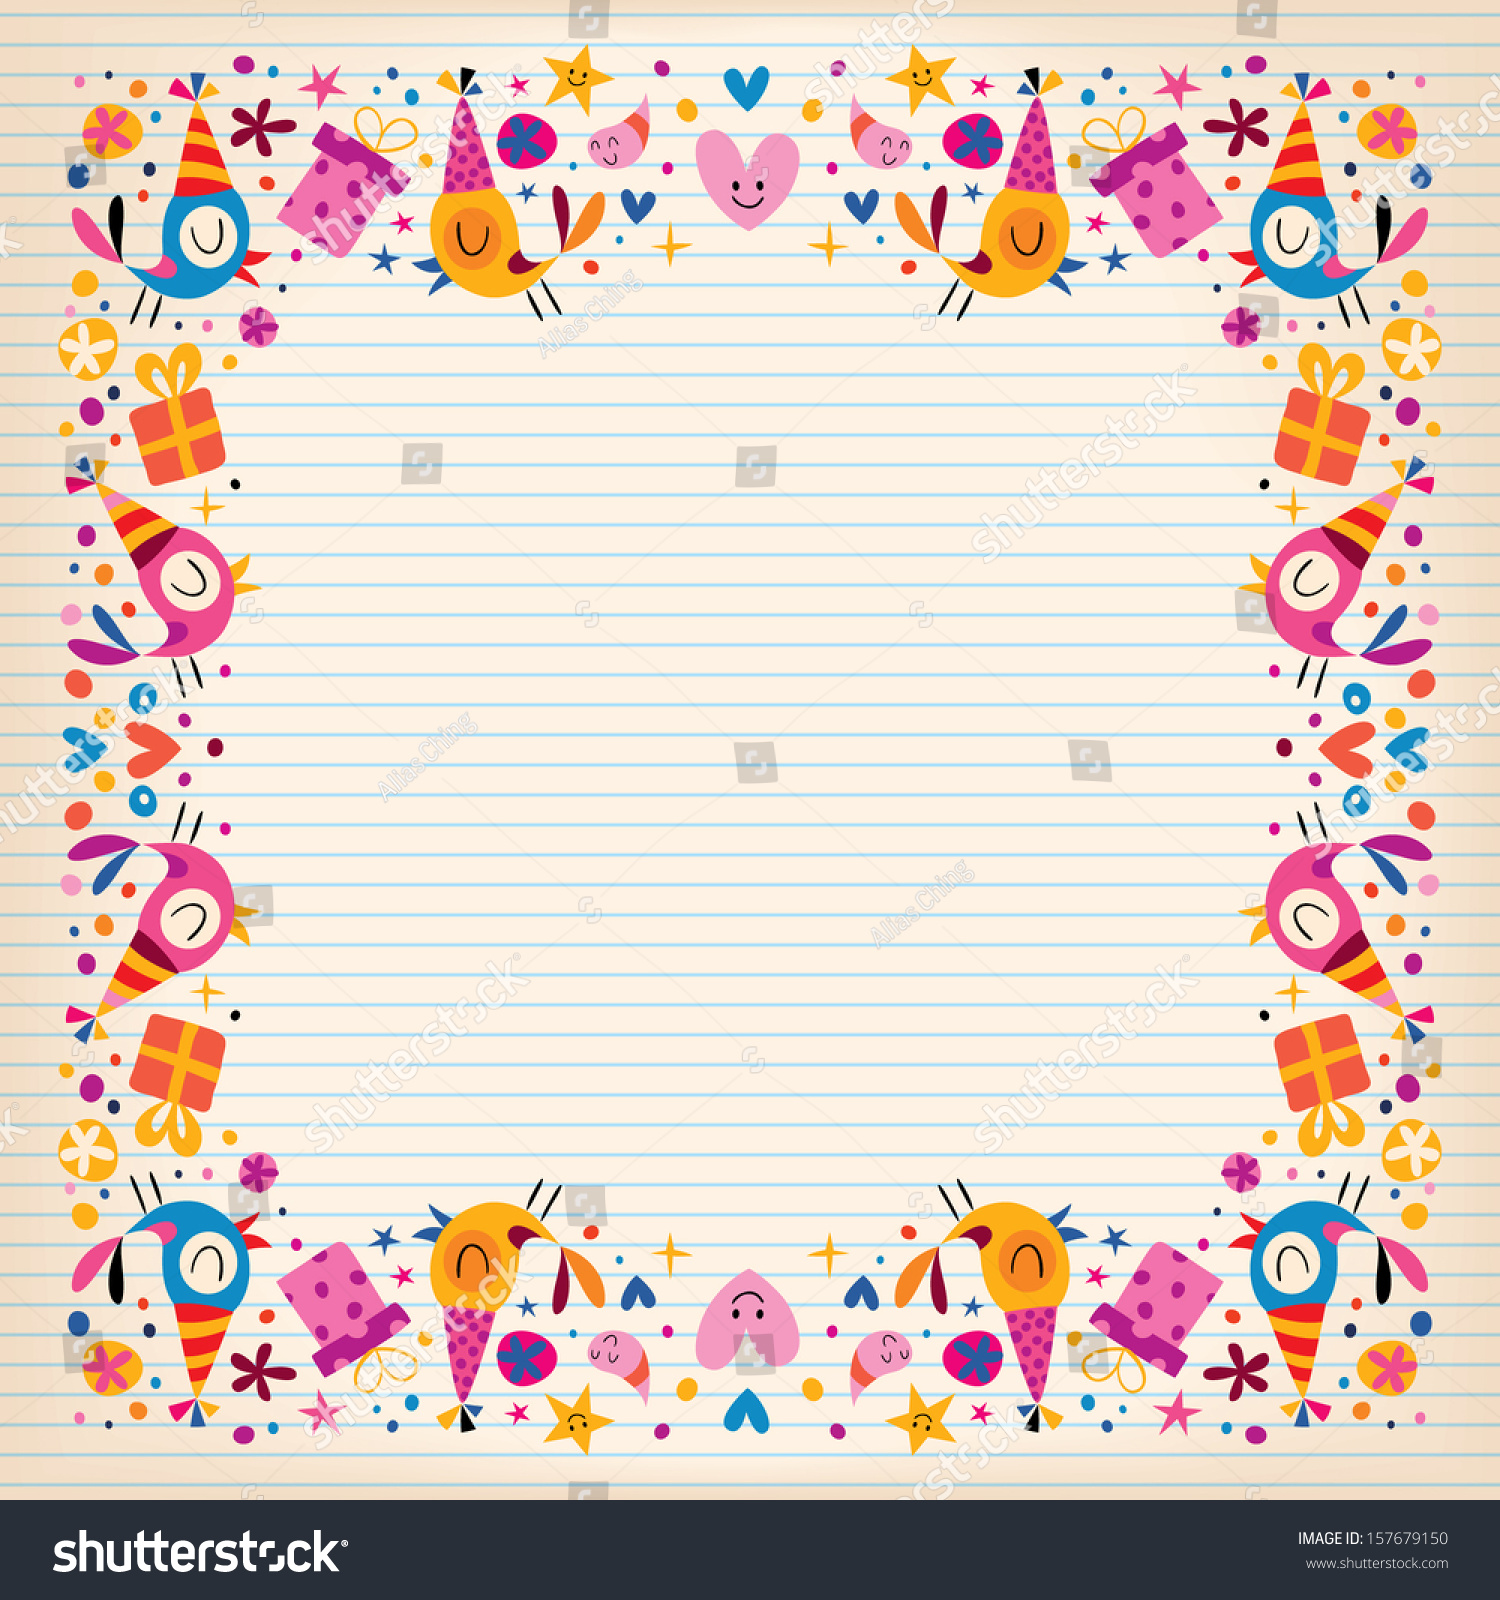 birthday border paper ; stock-vector-happy-birthday-border-lined-paper-card-with-space-for-text-157679150